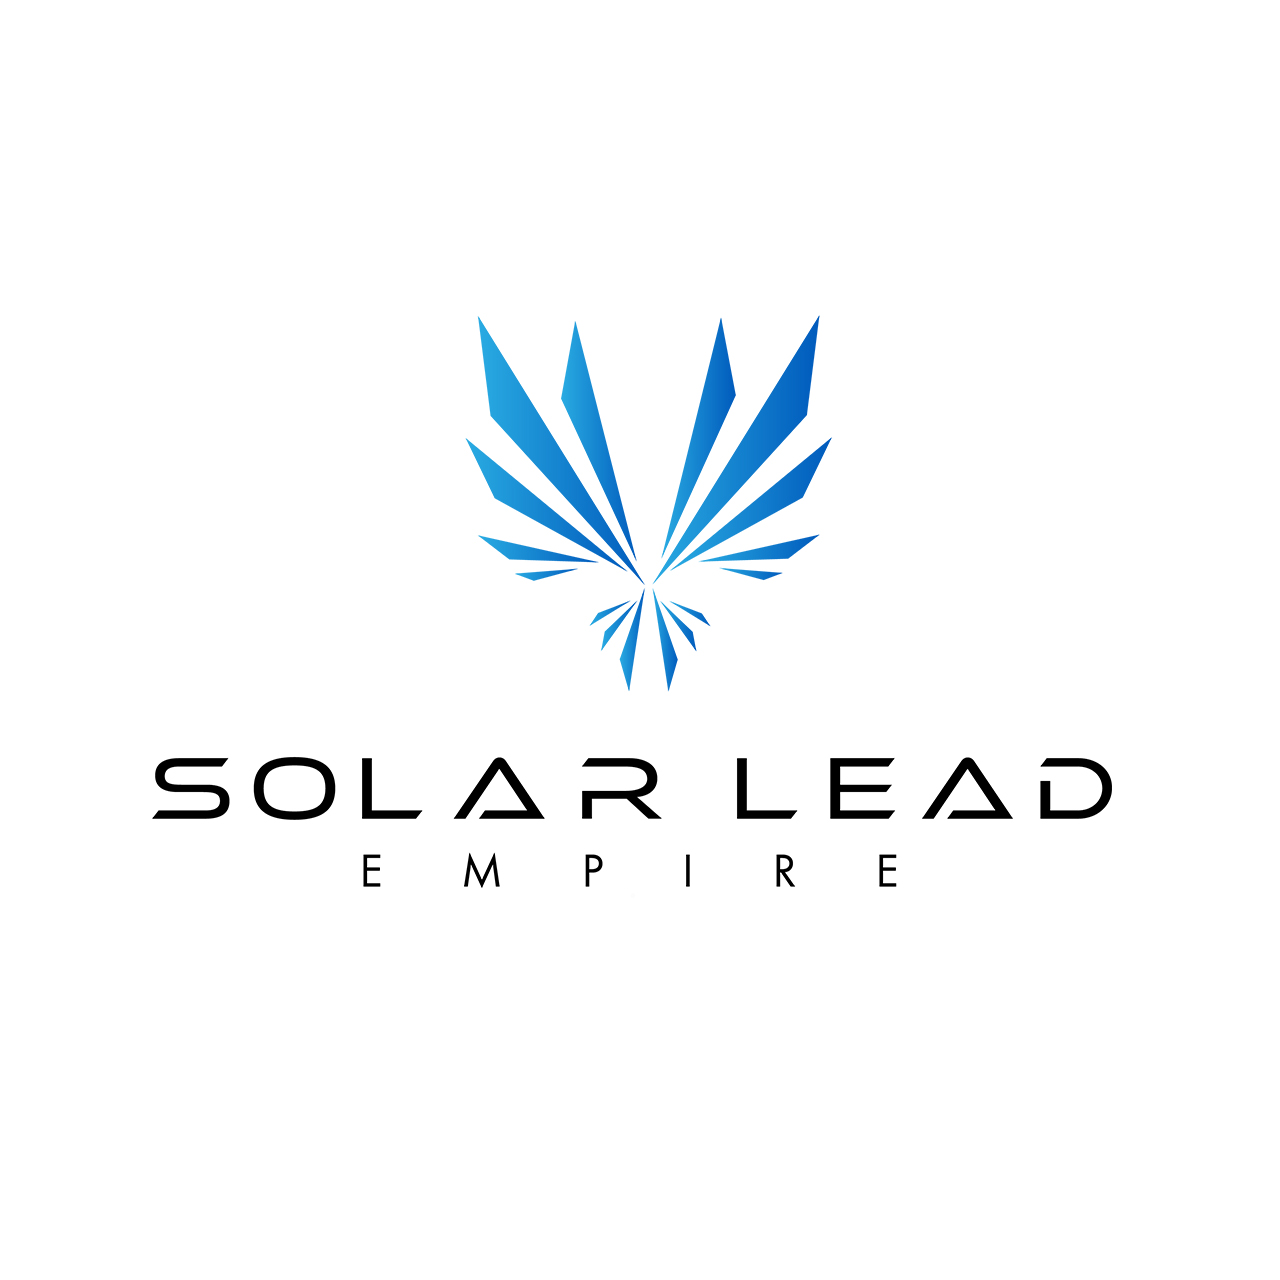 Solar Lead Empire primary image